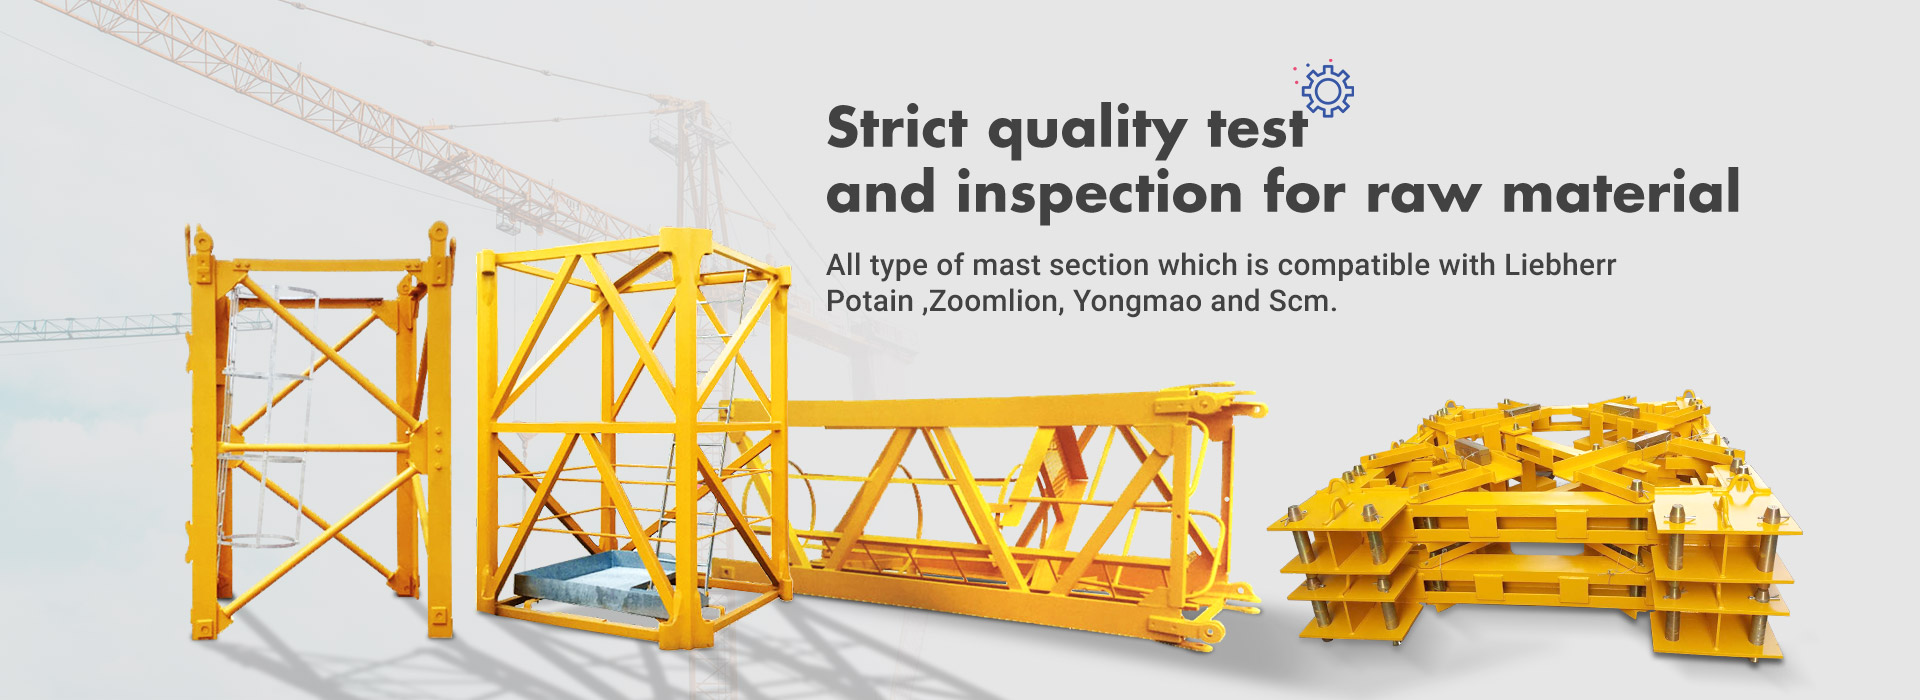 Strict quality test  and inspection for raw material